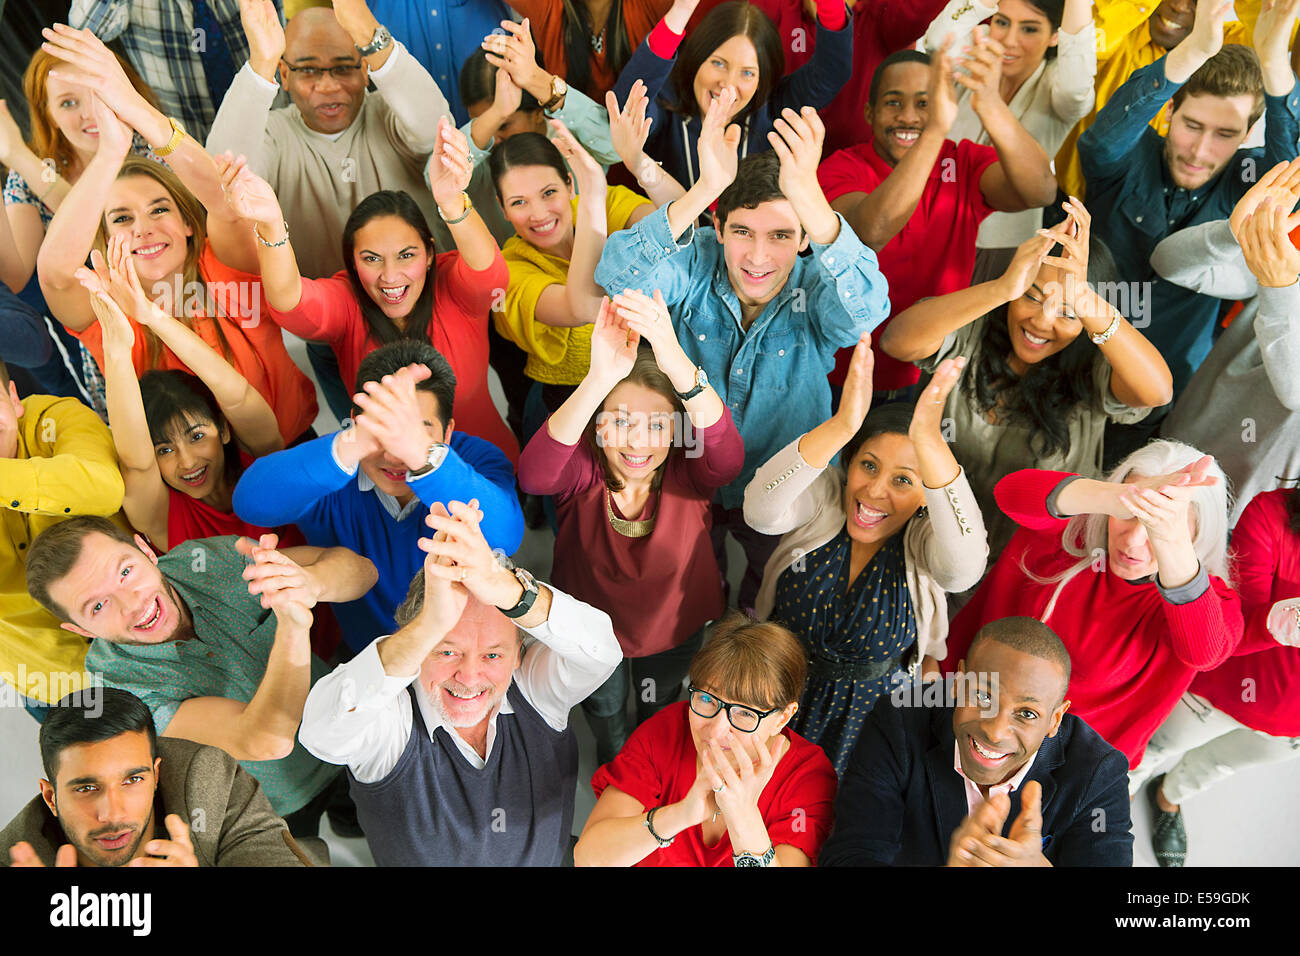 Portrait of diverse crowd clapping - Stock Image